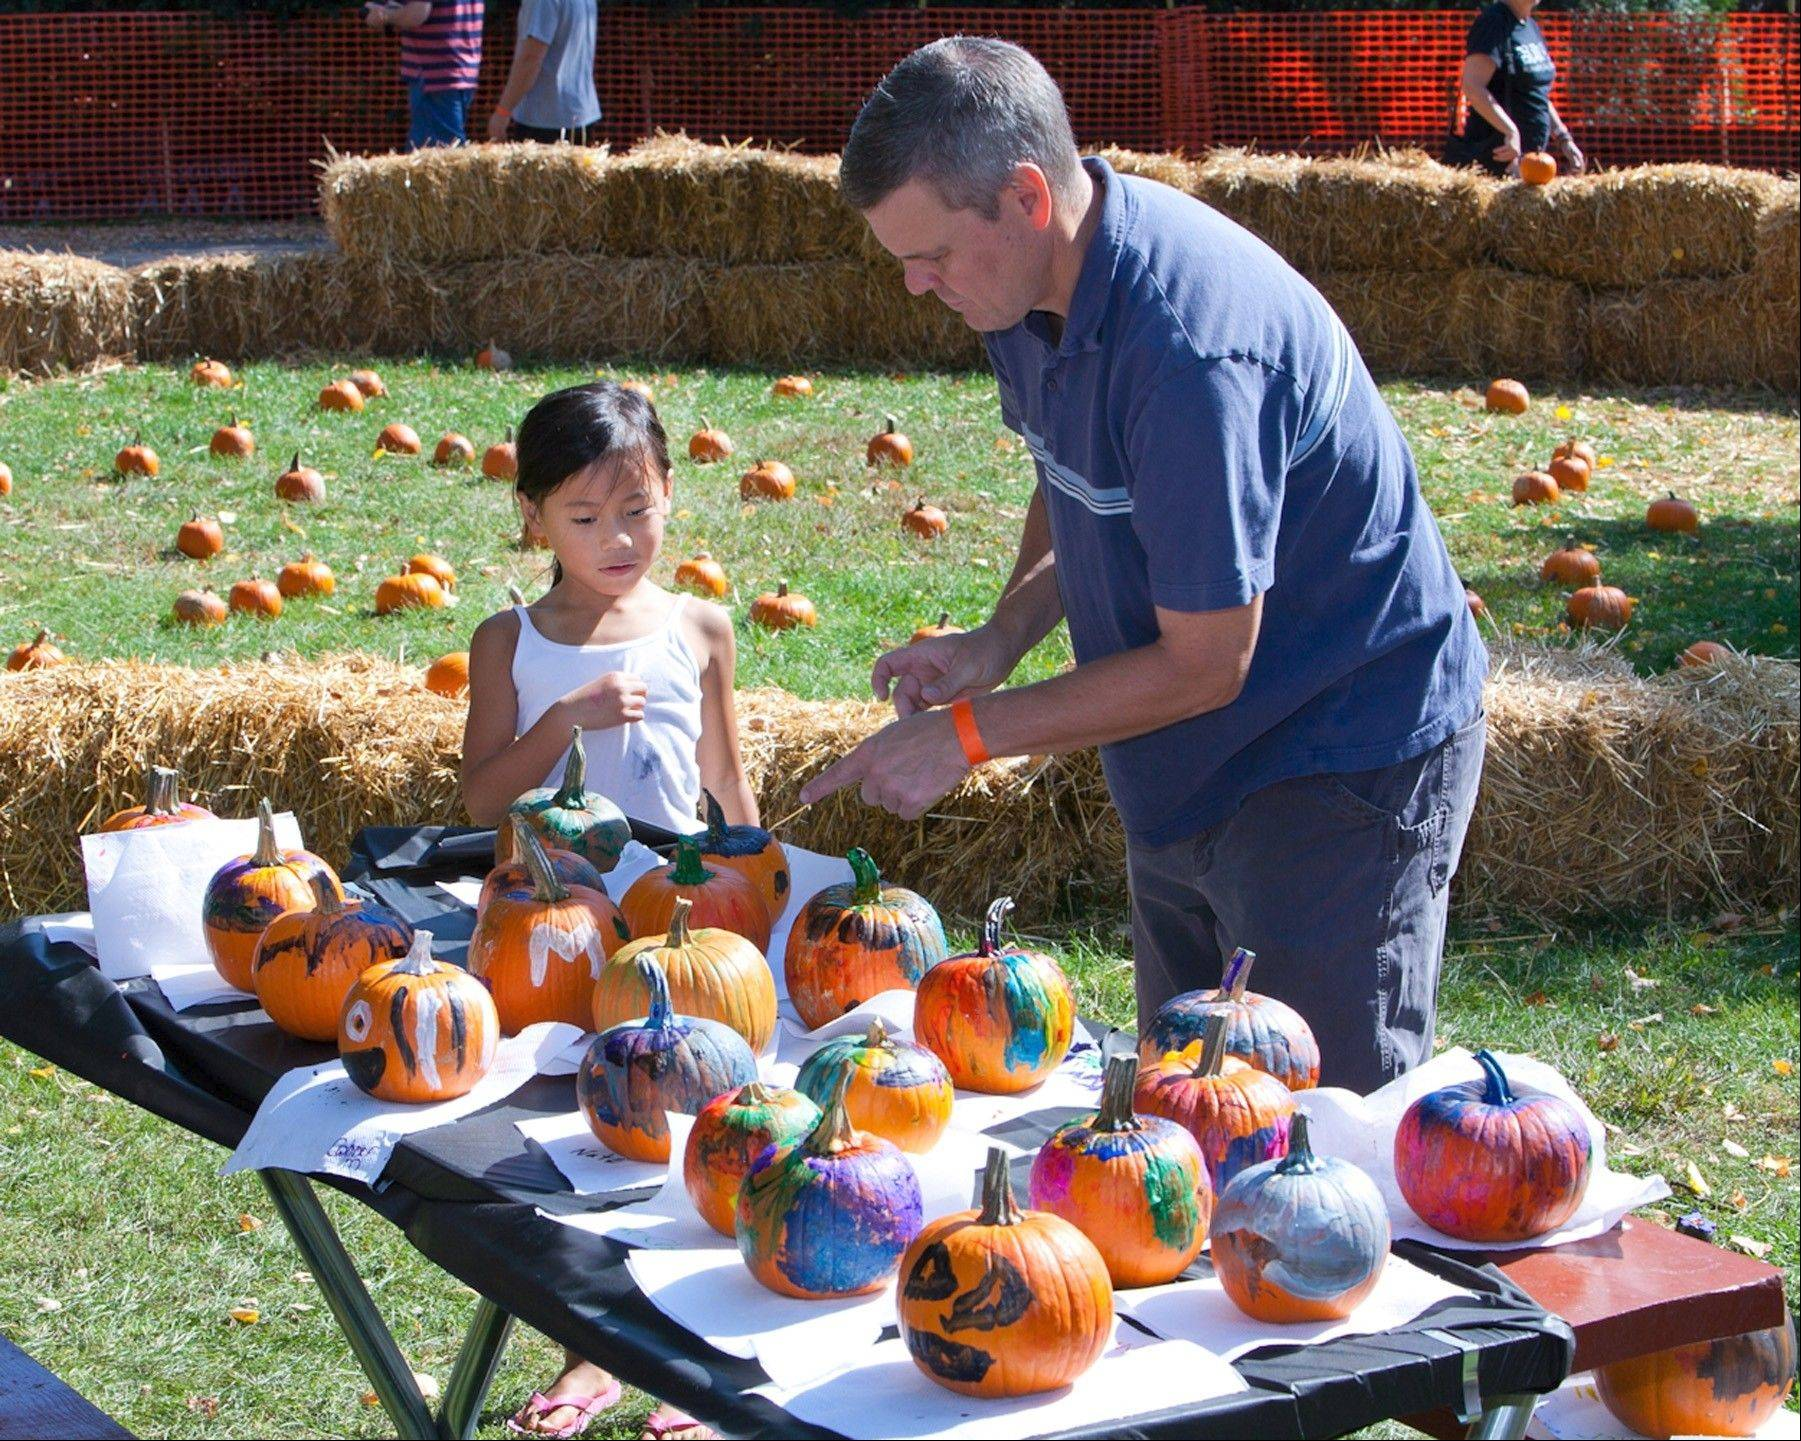 Pumpkin Weekends — at Blackberry Farm throughout October — are all about fall, with a pumpkin patch, train rides and many more festive activities to celebrate the season and the spirit of Halloween.